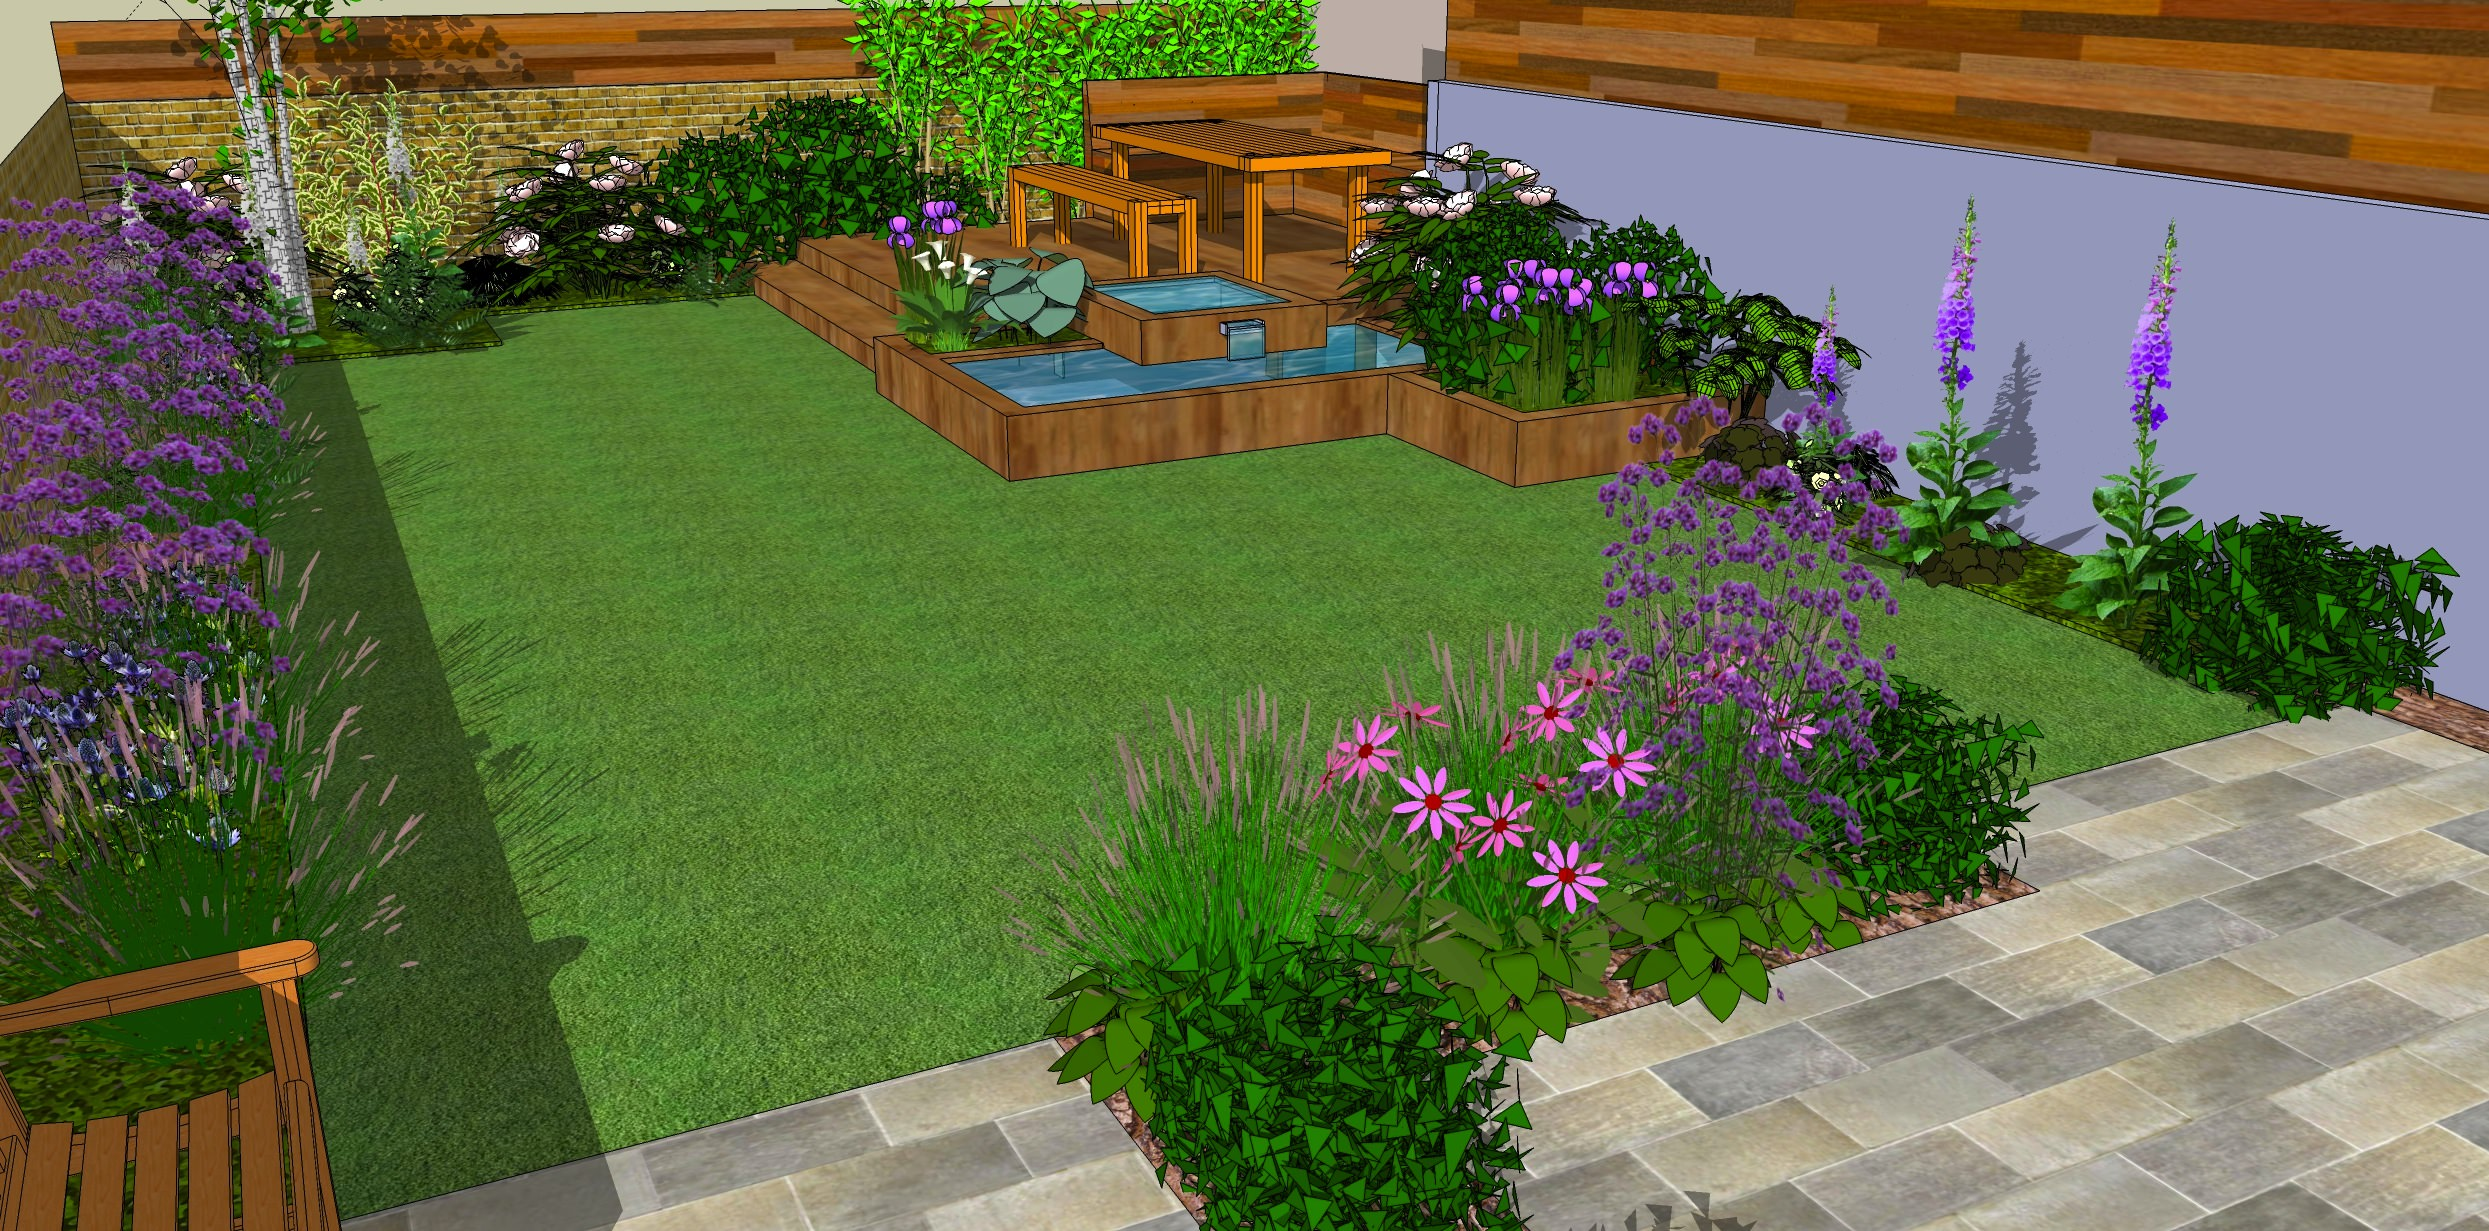 Low maintenance garden designs garden club london for Design ideas for your garden